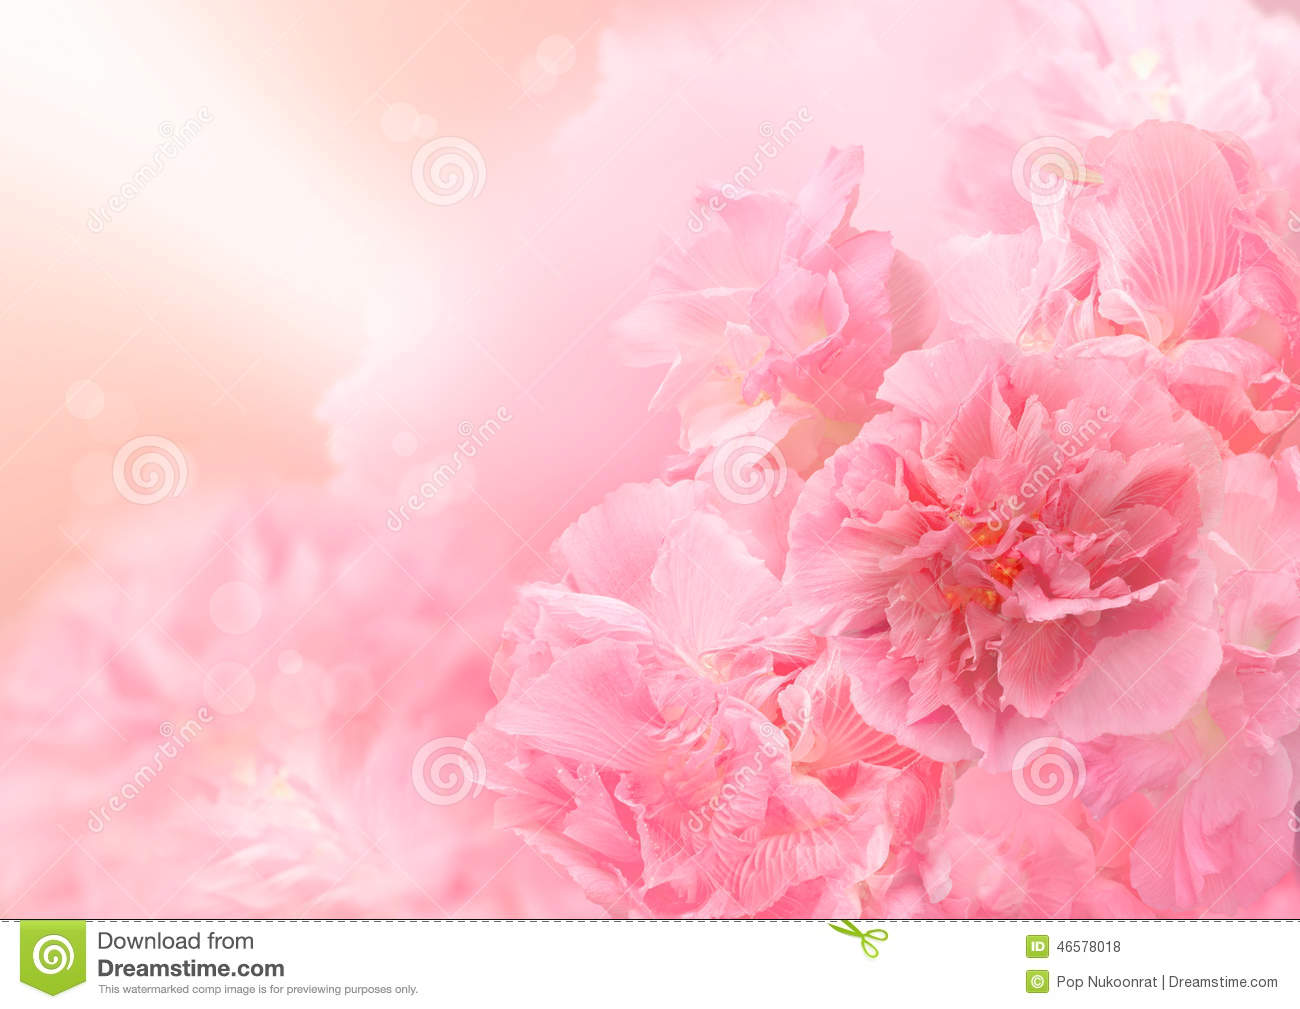 Pink blossom background, Abstract big flower, Beautiful flower